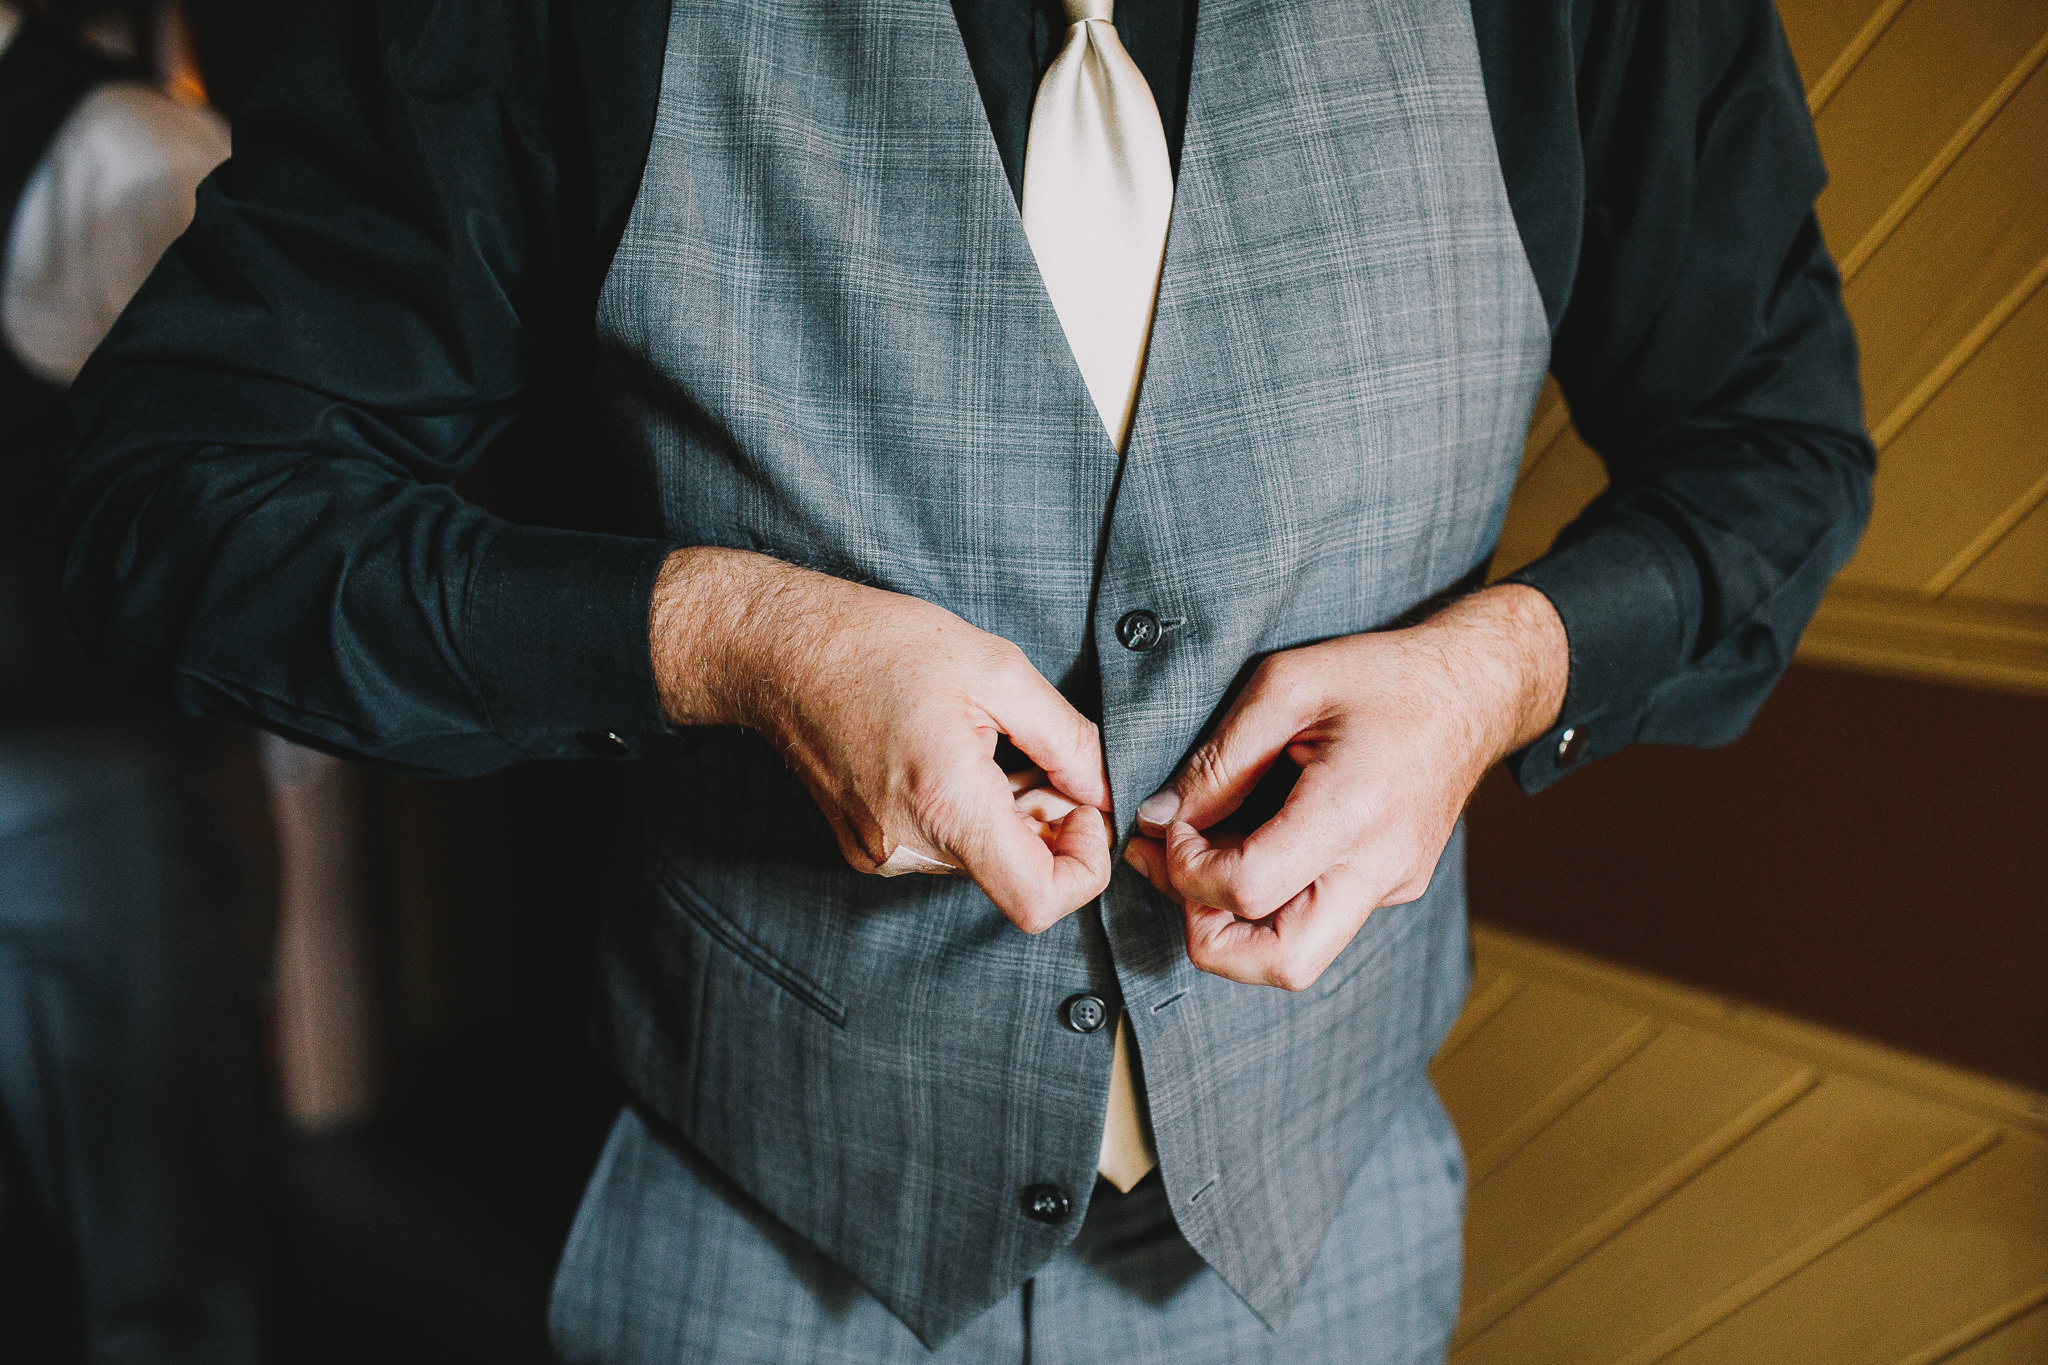 Archer Inspired Photography Sara and Aaron Winchester Mystery House NorCal San Jose California Wedding Photographer-50.jpg